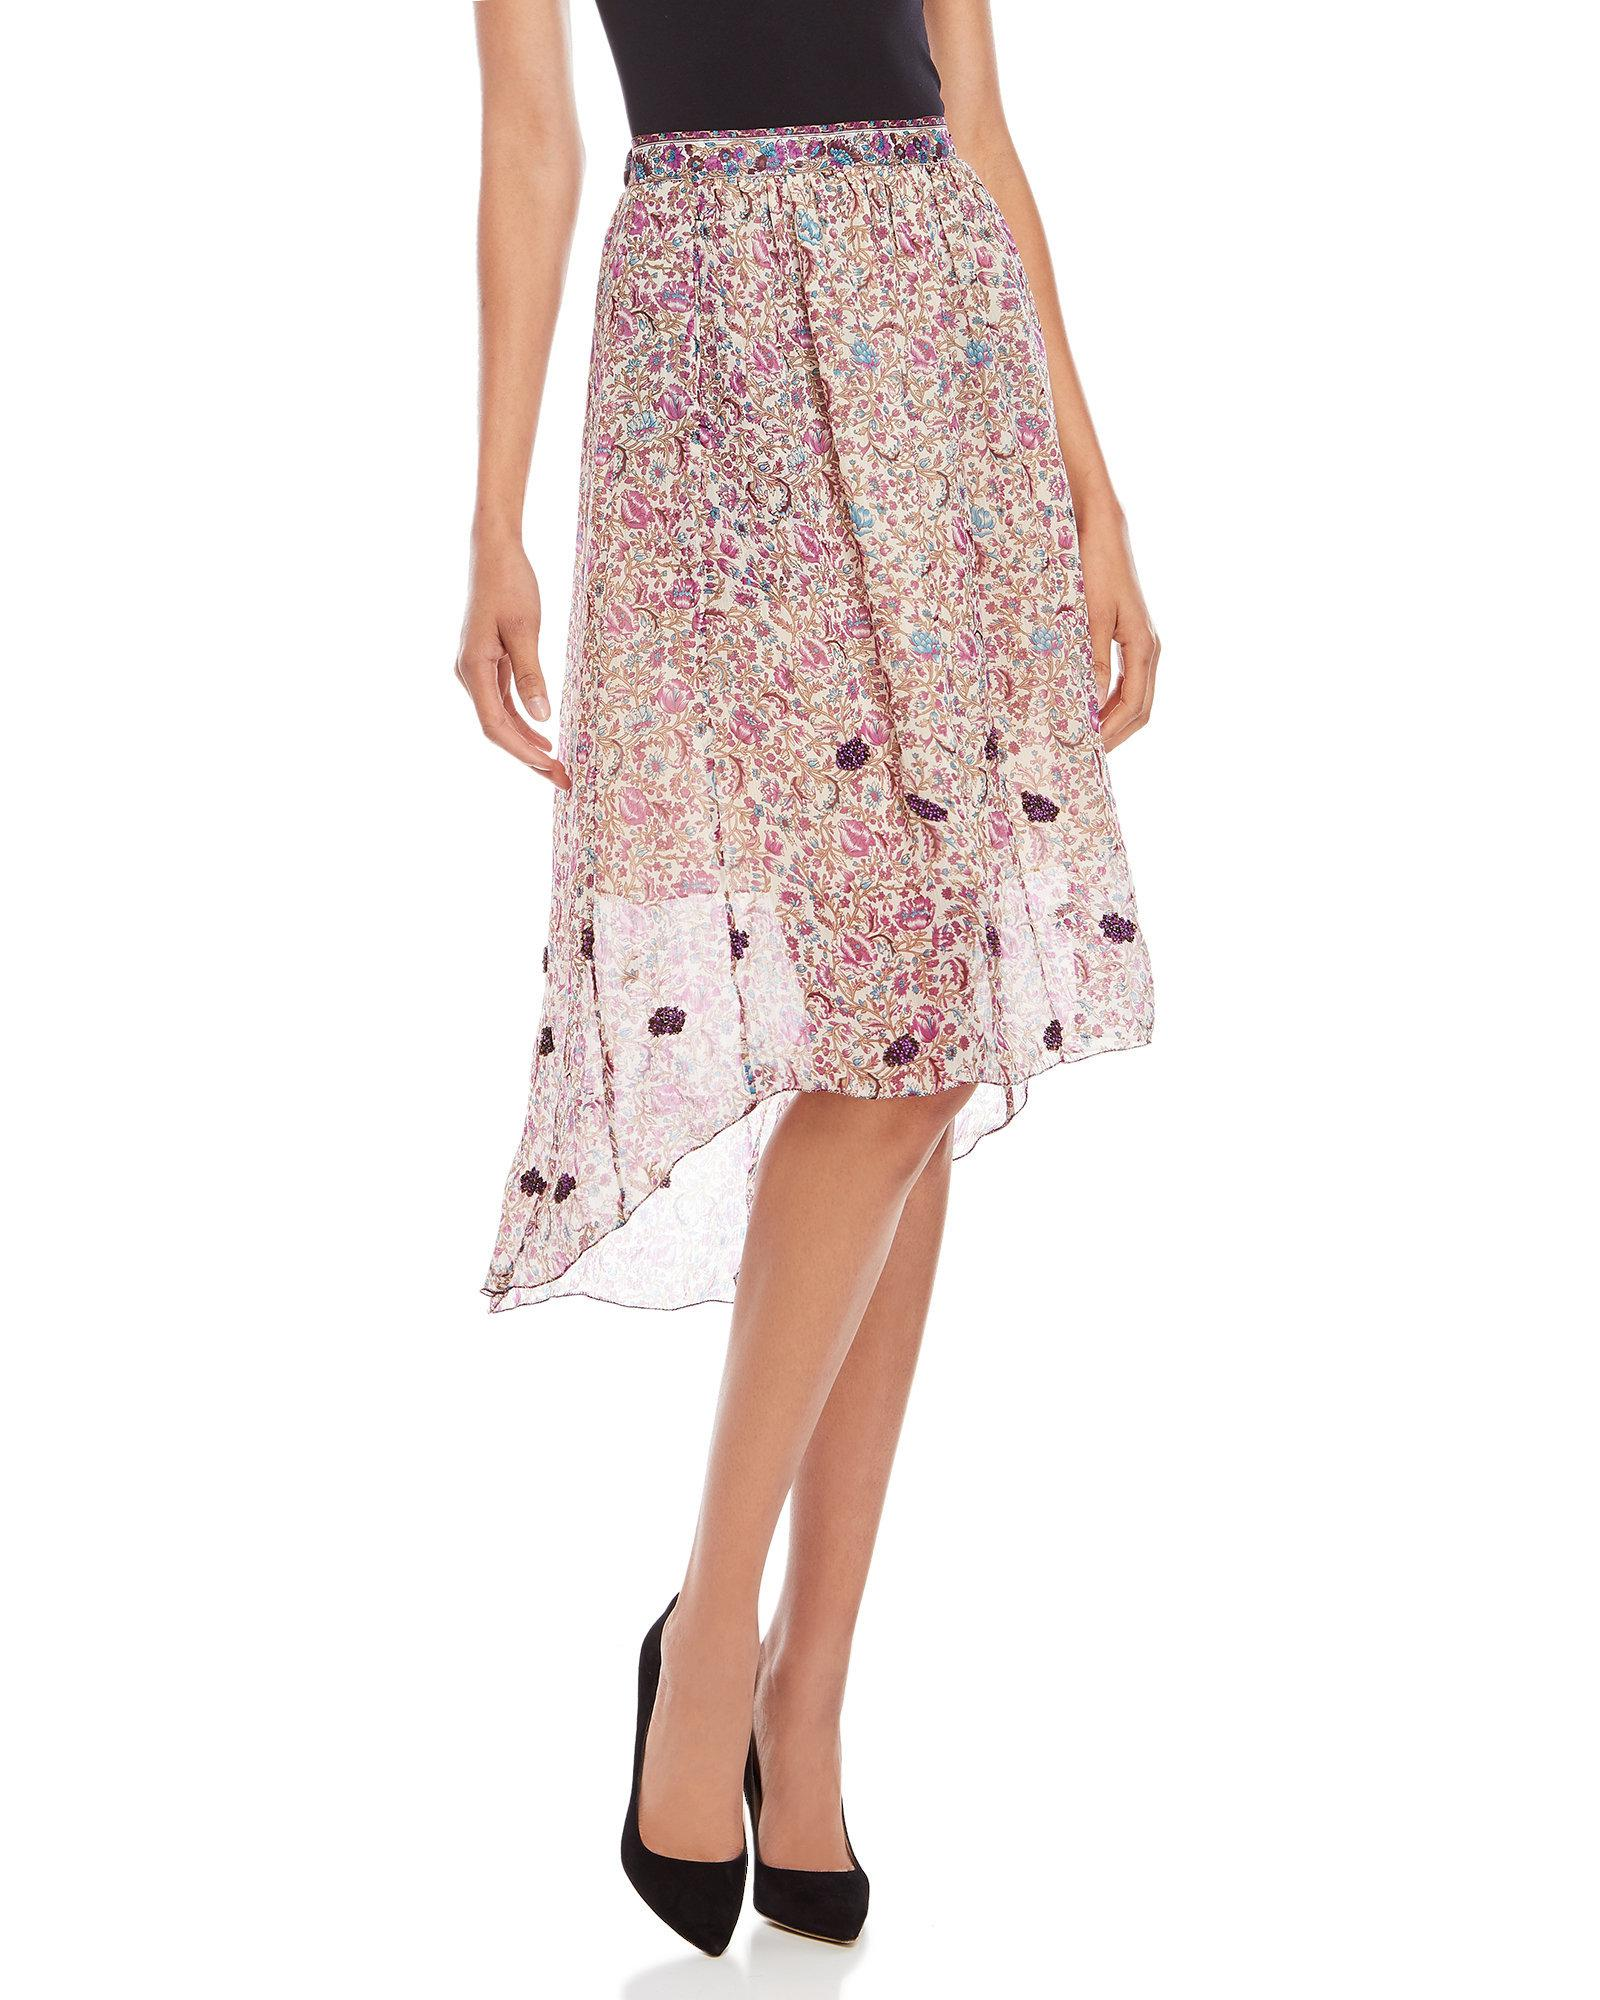 Lyst - Zadig   Voltaire Joslin Floral Print Maxi Skirt in Pink 73bde1a0f